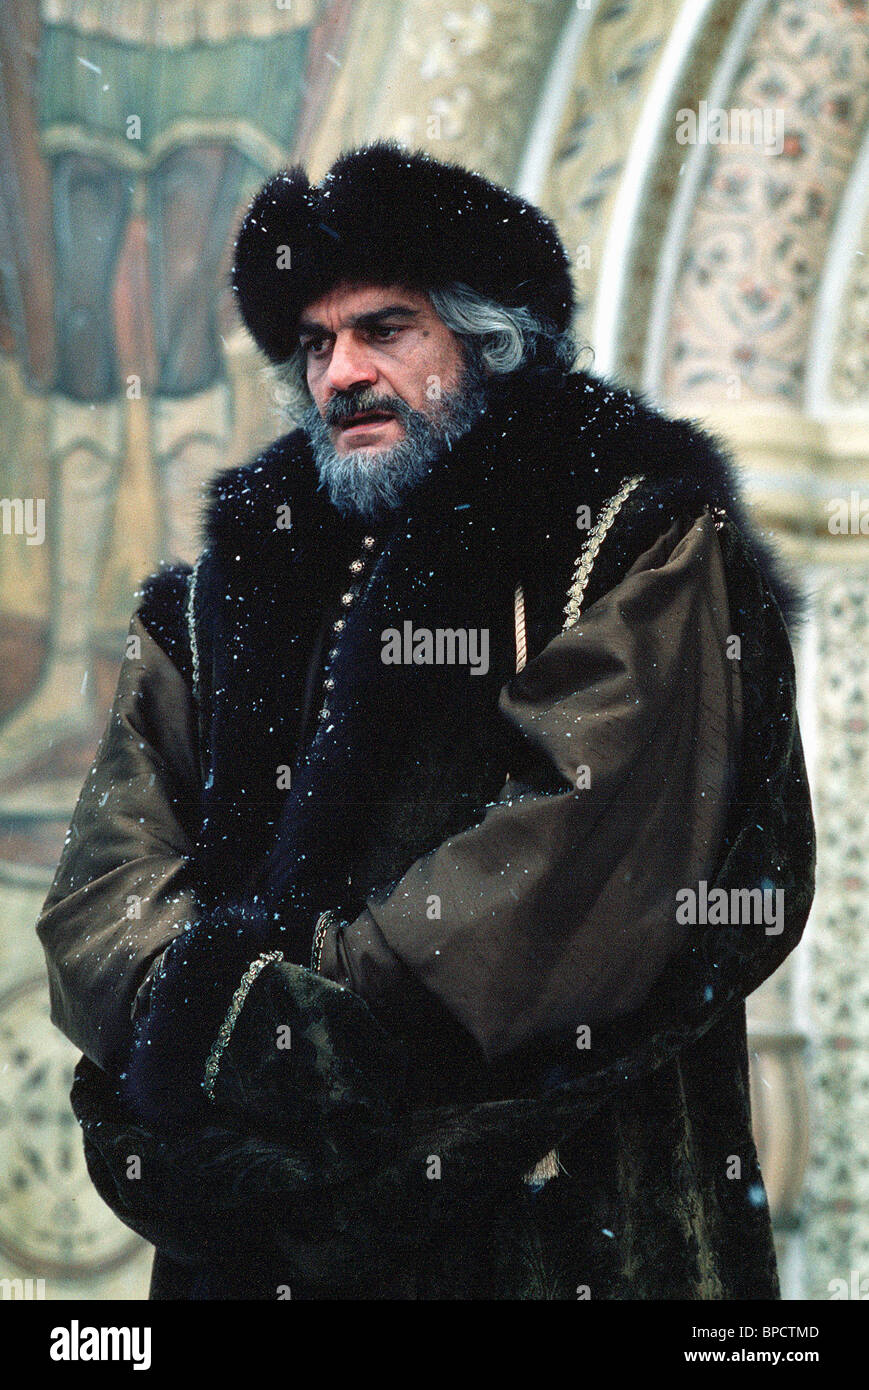 OMAR SHARIF PETER THE GREAT (1986) Stock Photo